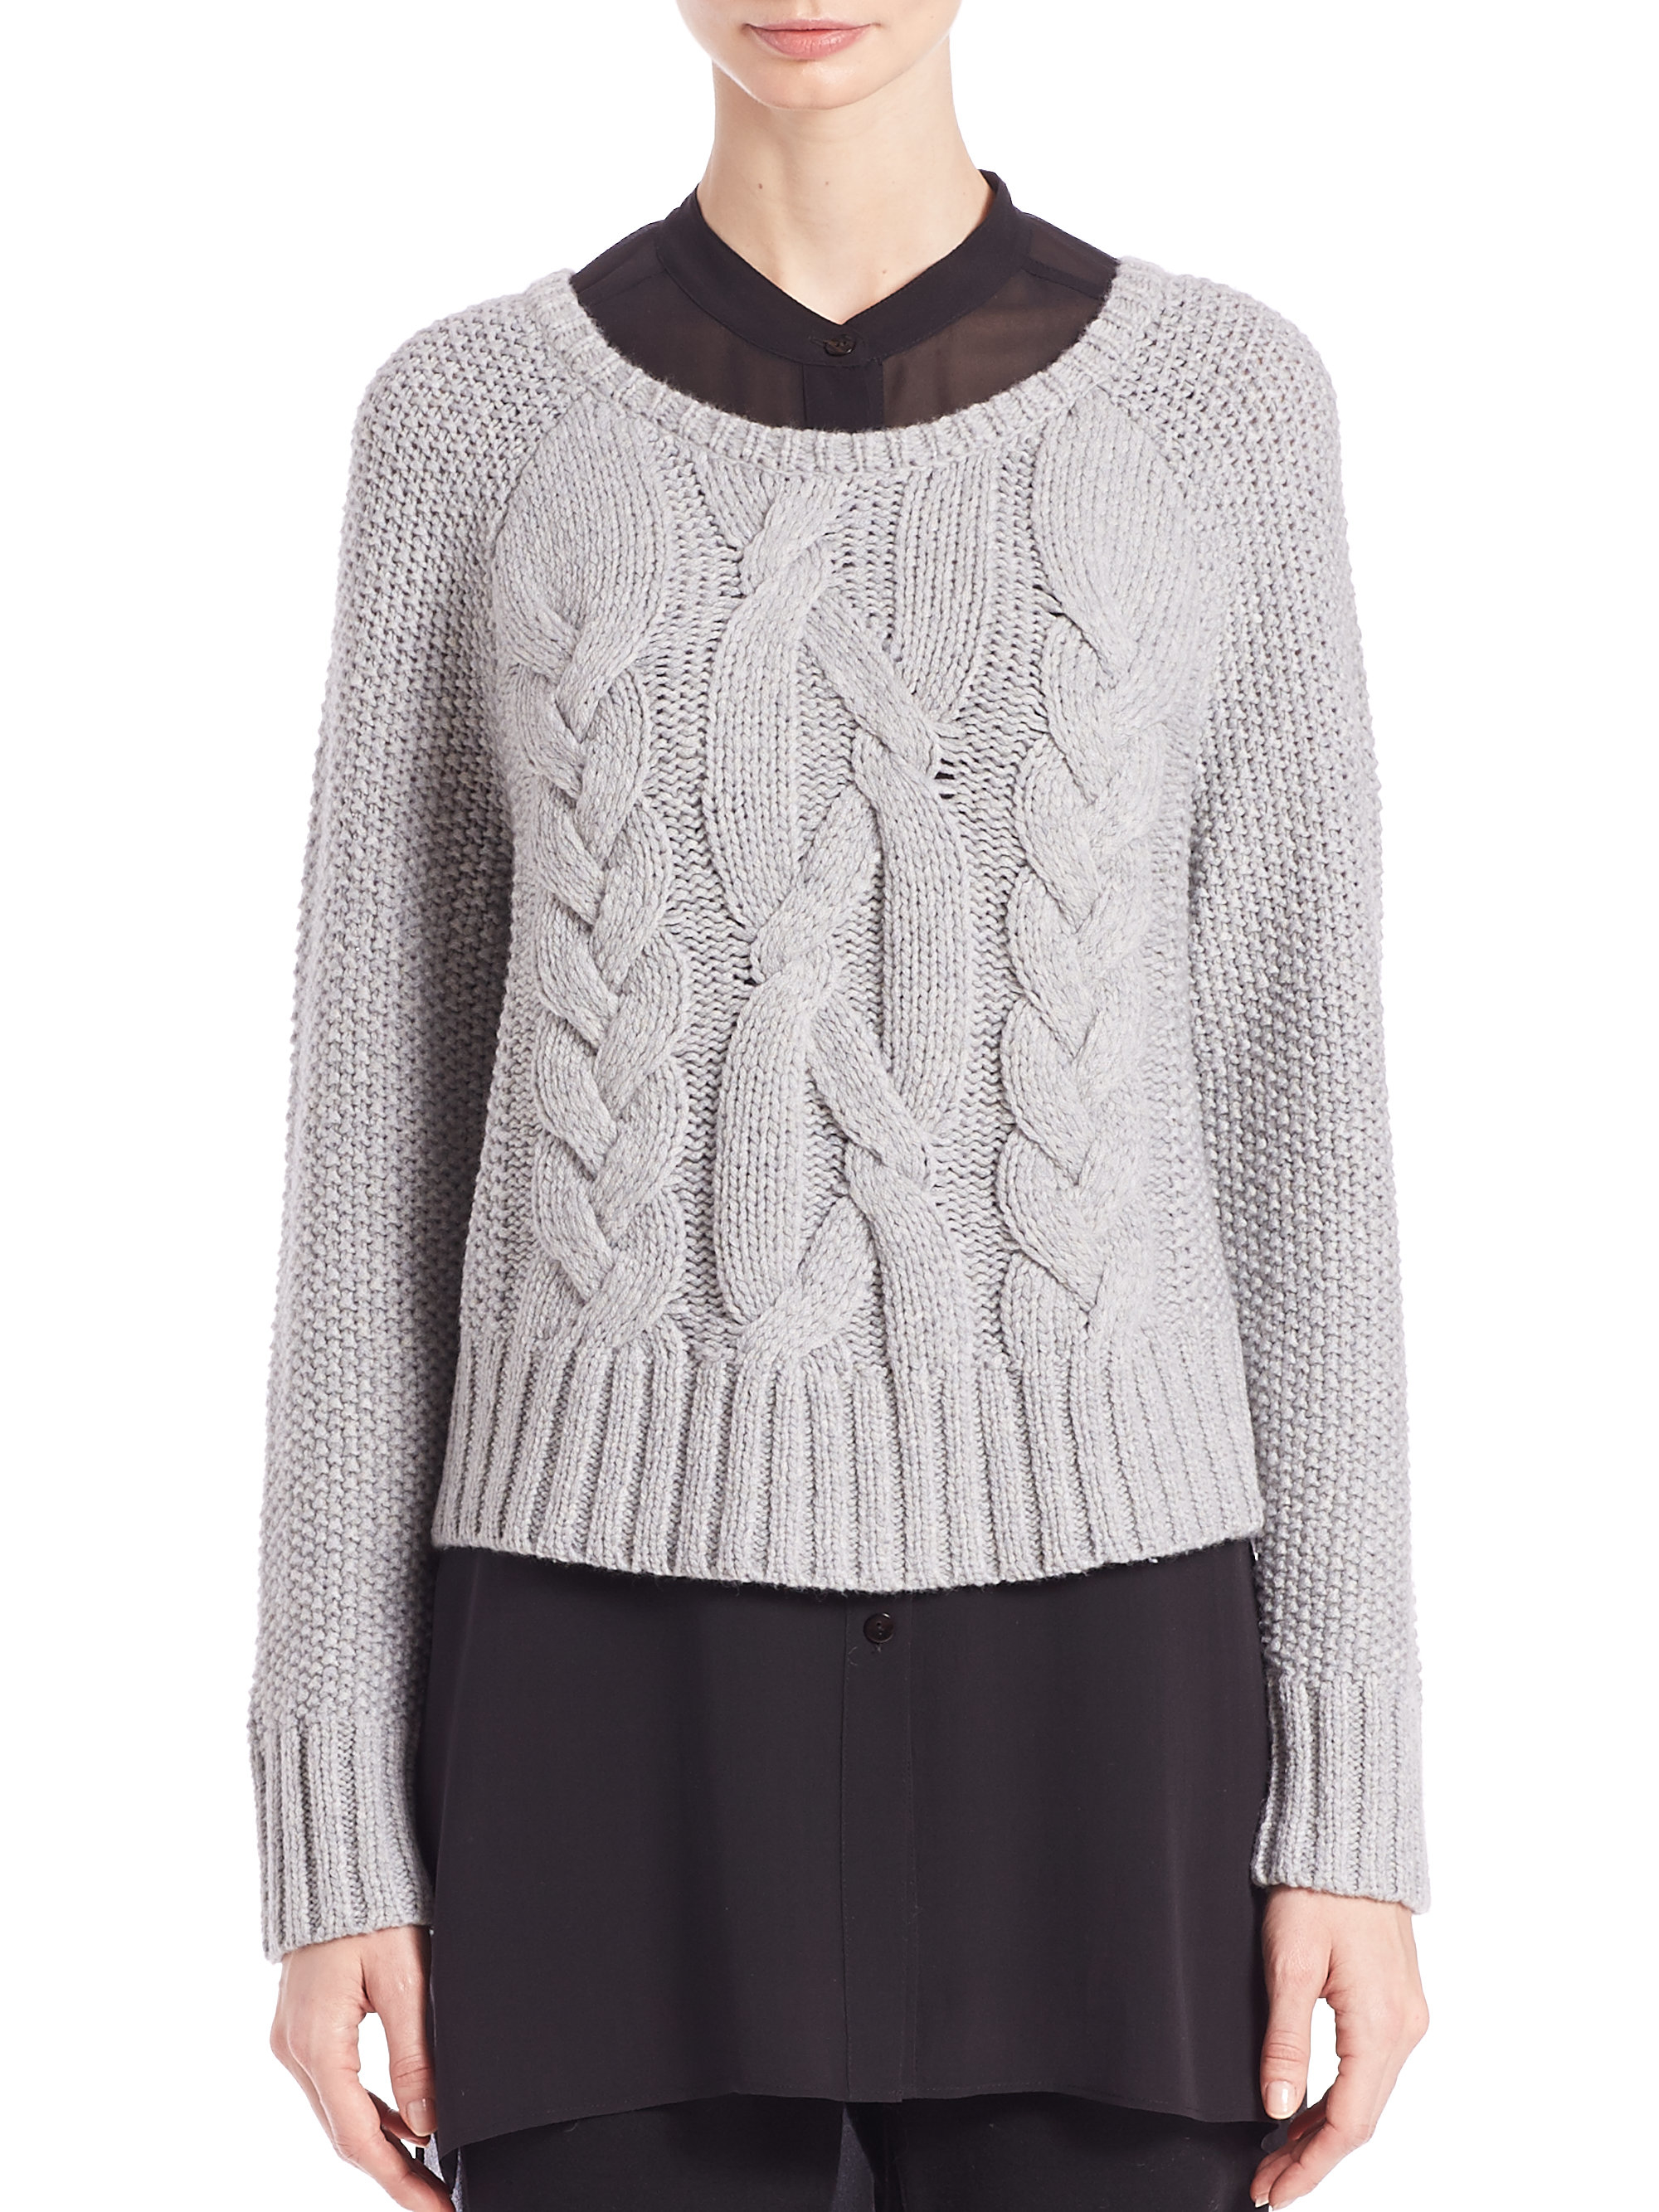 Eileen fisher Cropped Cable-knit Sweater in Gray   Lyst